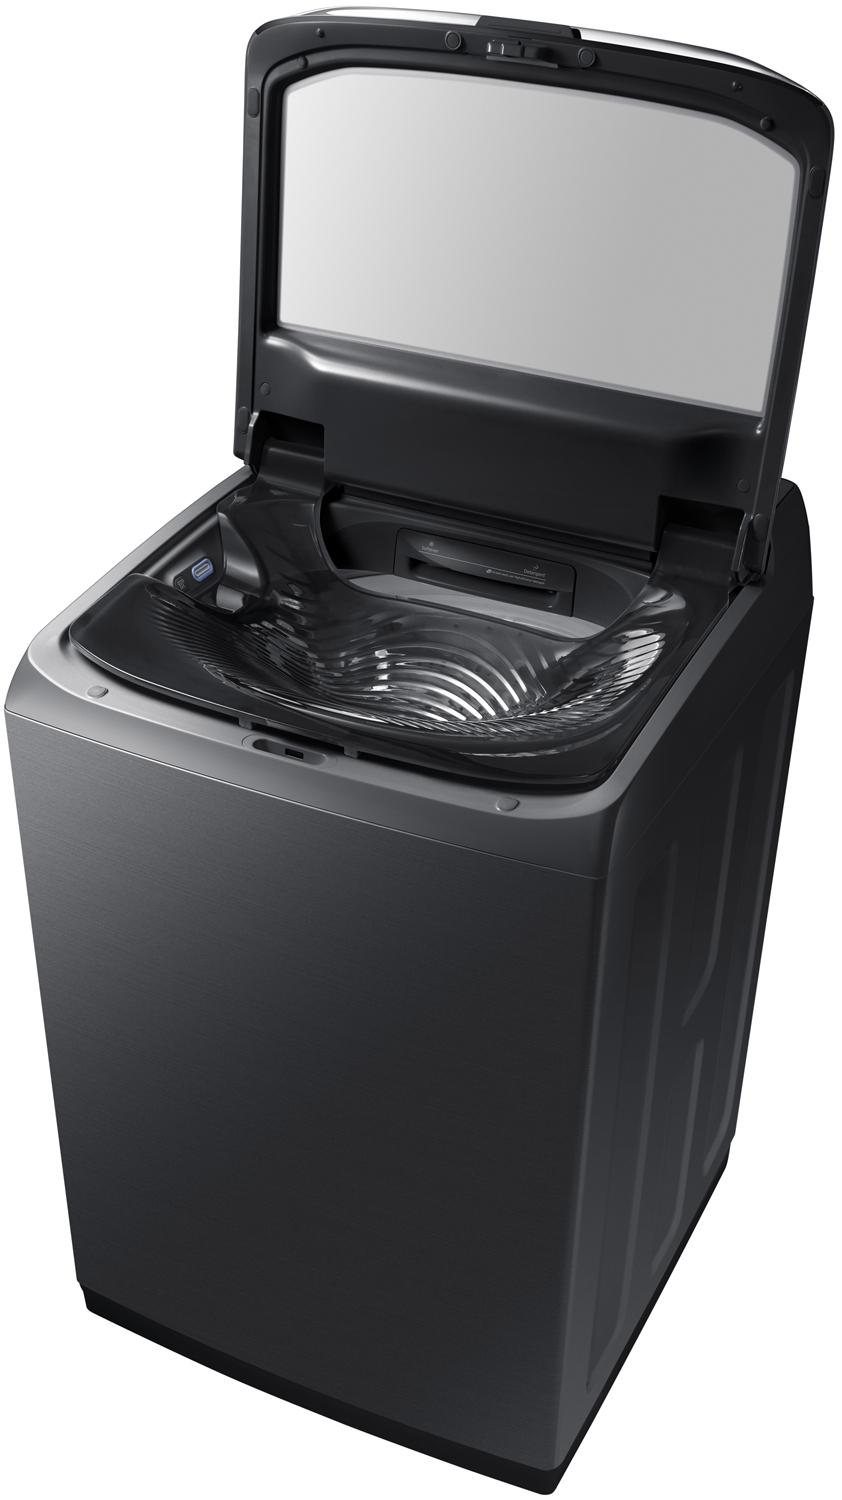 Samsung Wa8750 5 4 Cu Ft Activewash Top Load Washer With Integrated Touch Controls